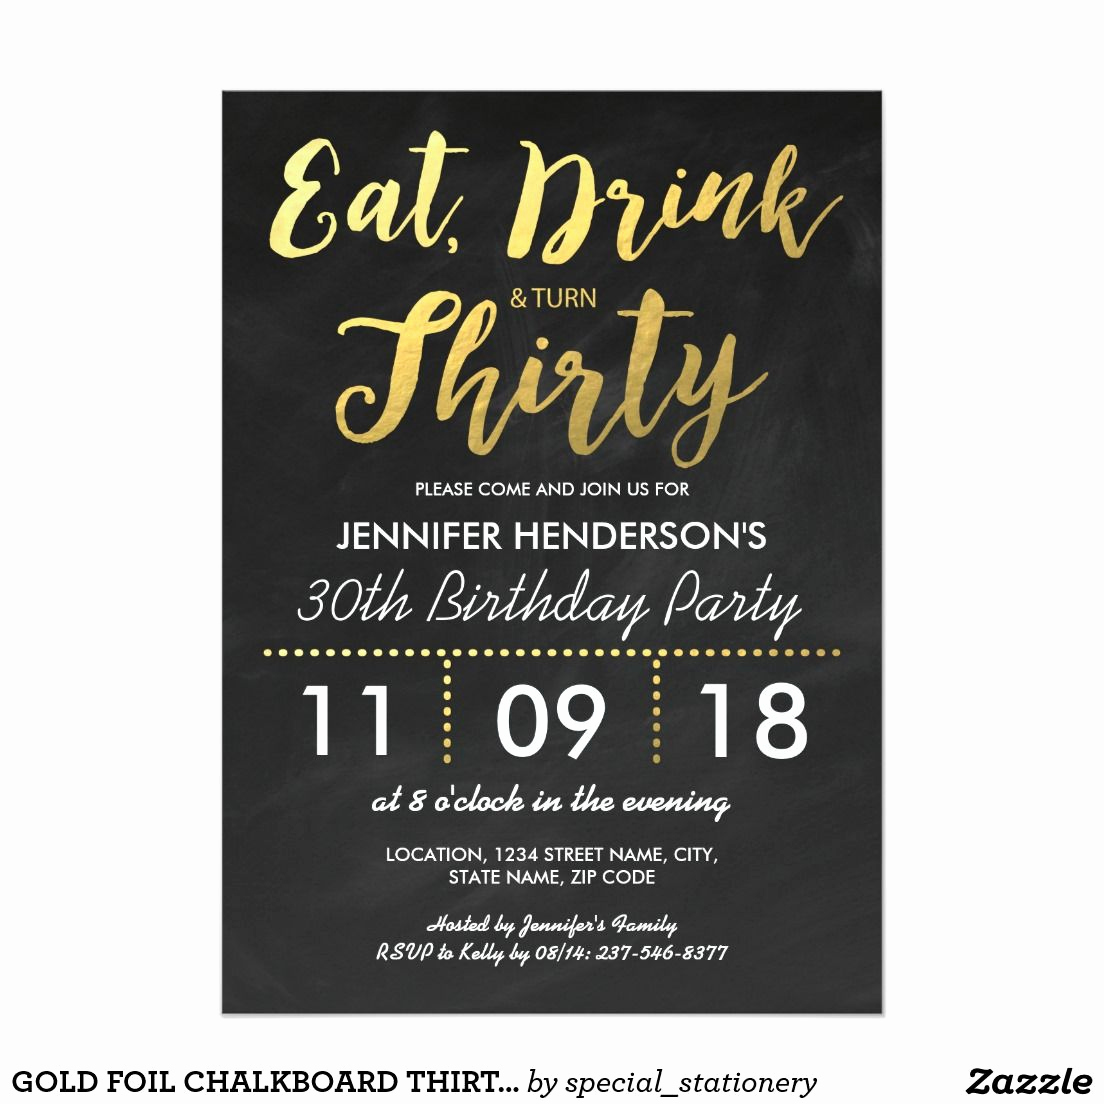 30th Birthday Invitation Wording Awesome Gold Foil Chalkboard Thirty Birthday